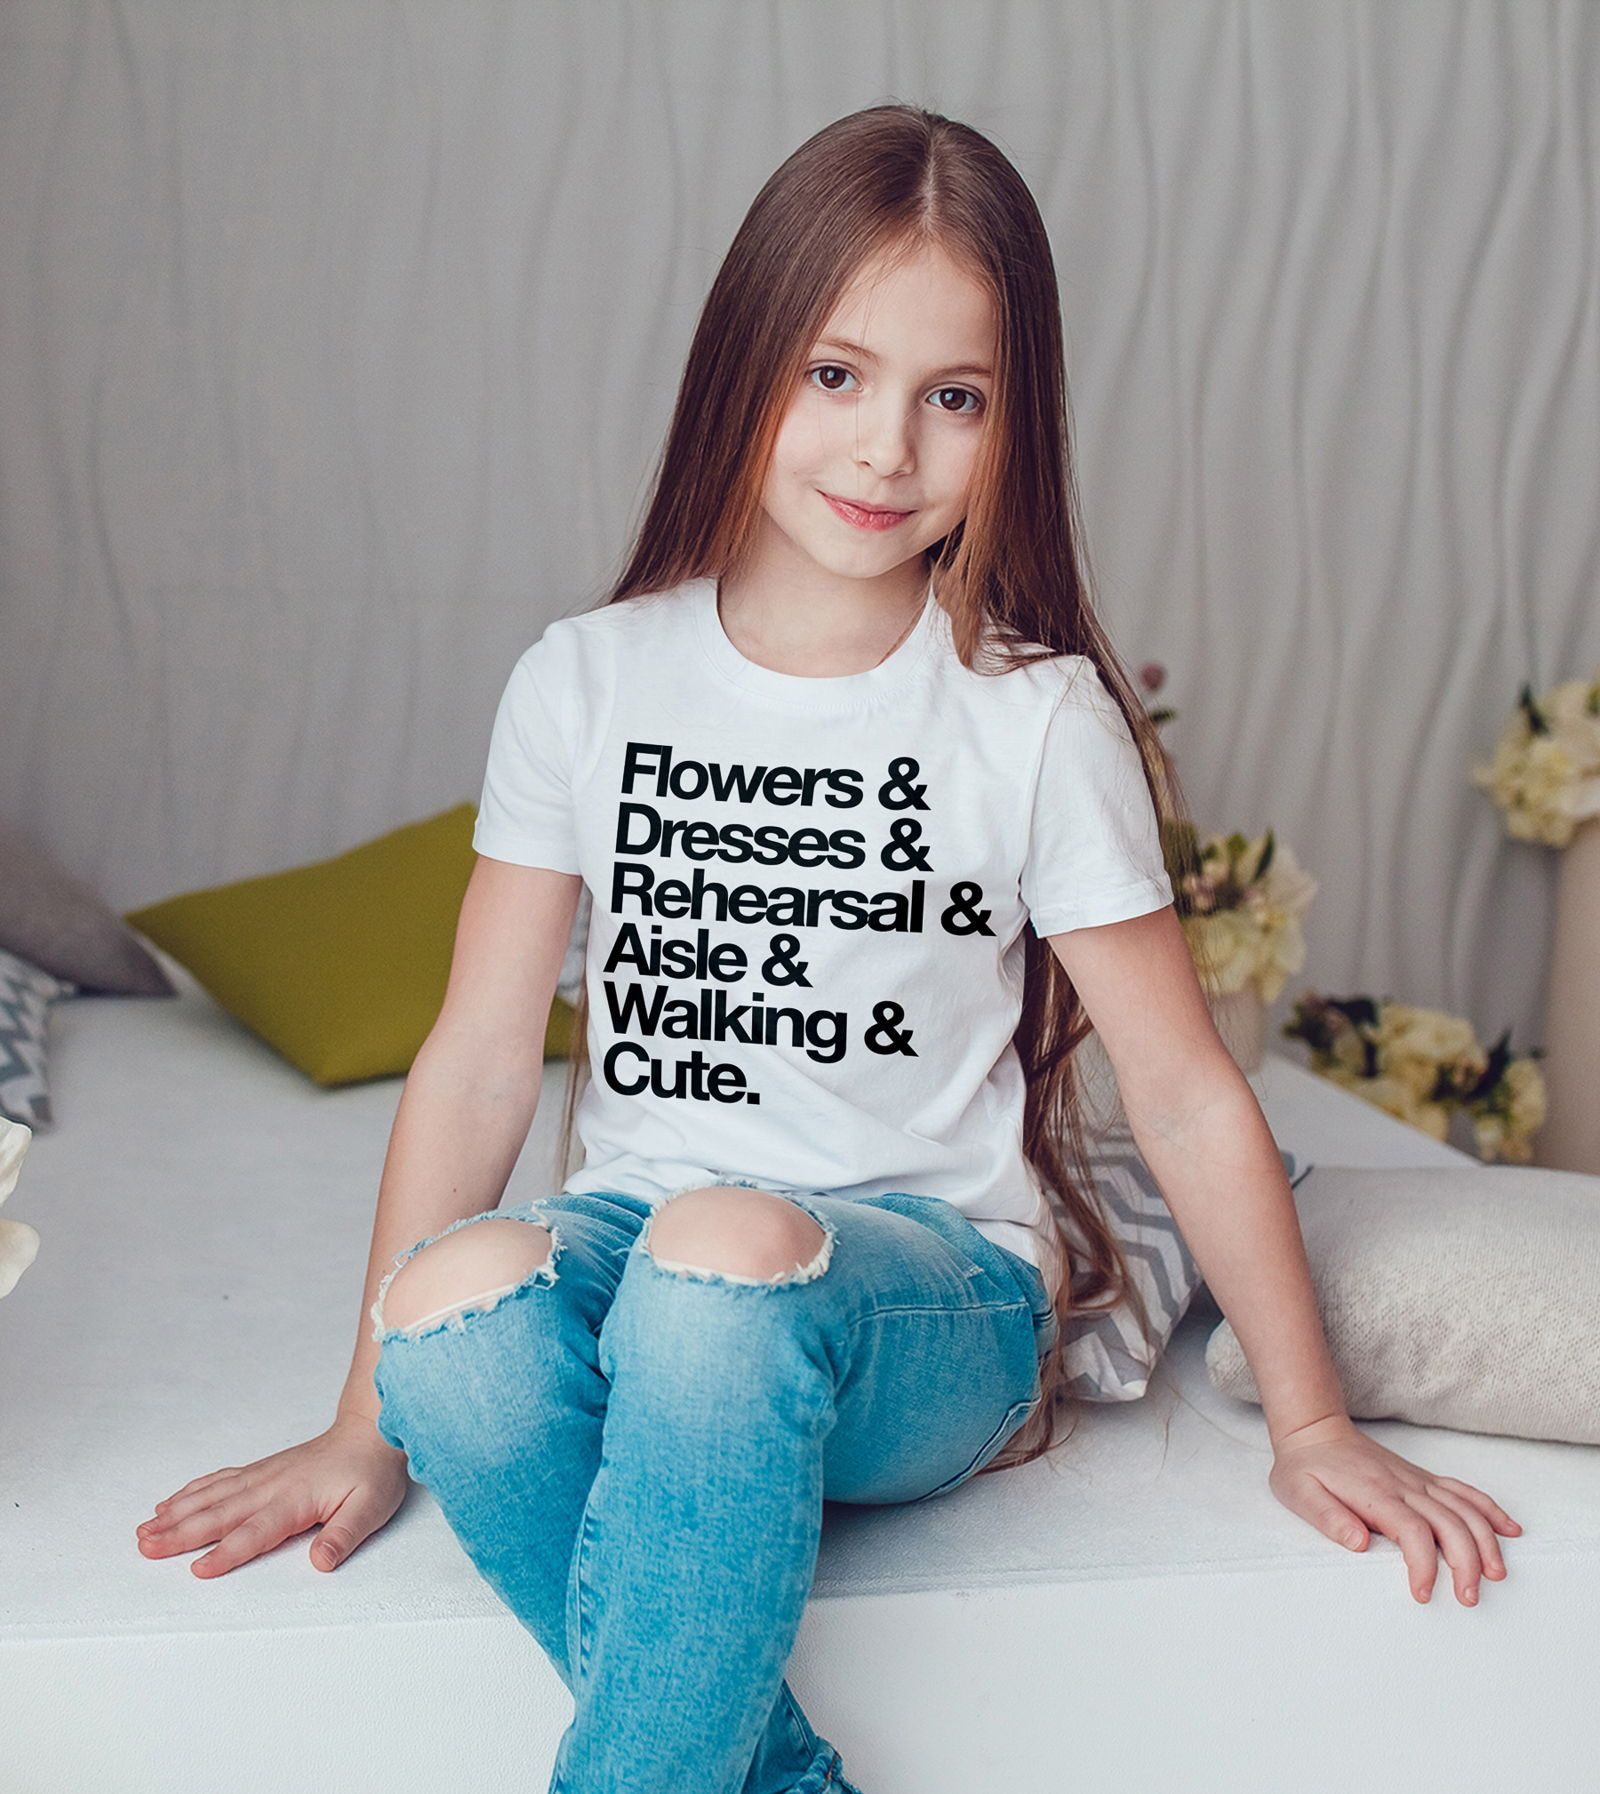 Flower Girl Shirt for Wedding Bridal Party Flower Girls Kids or Baby Tee for Wedding Outfits Cute Girls Shirt